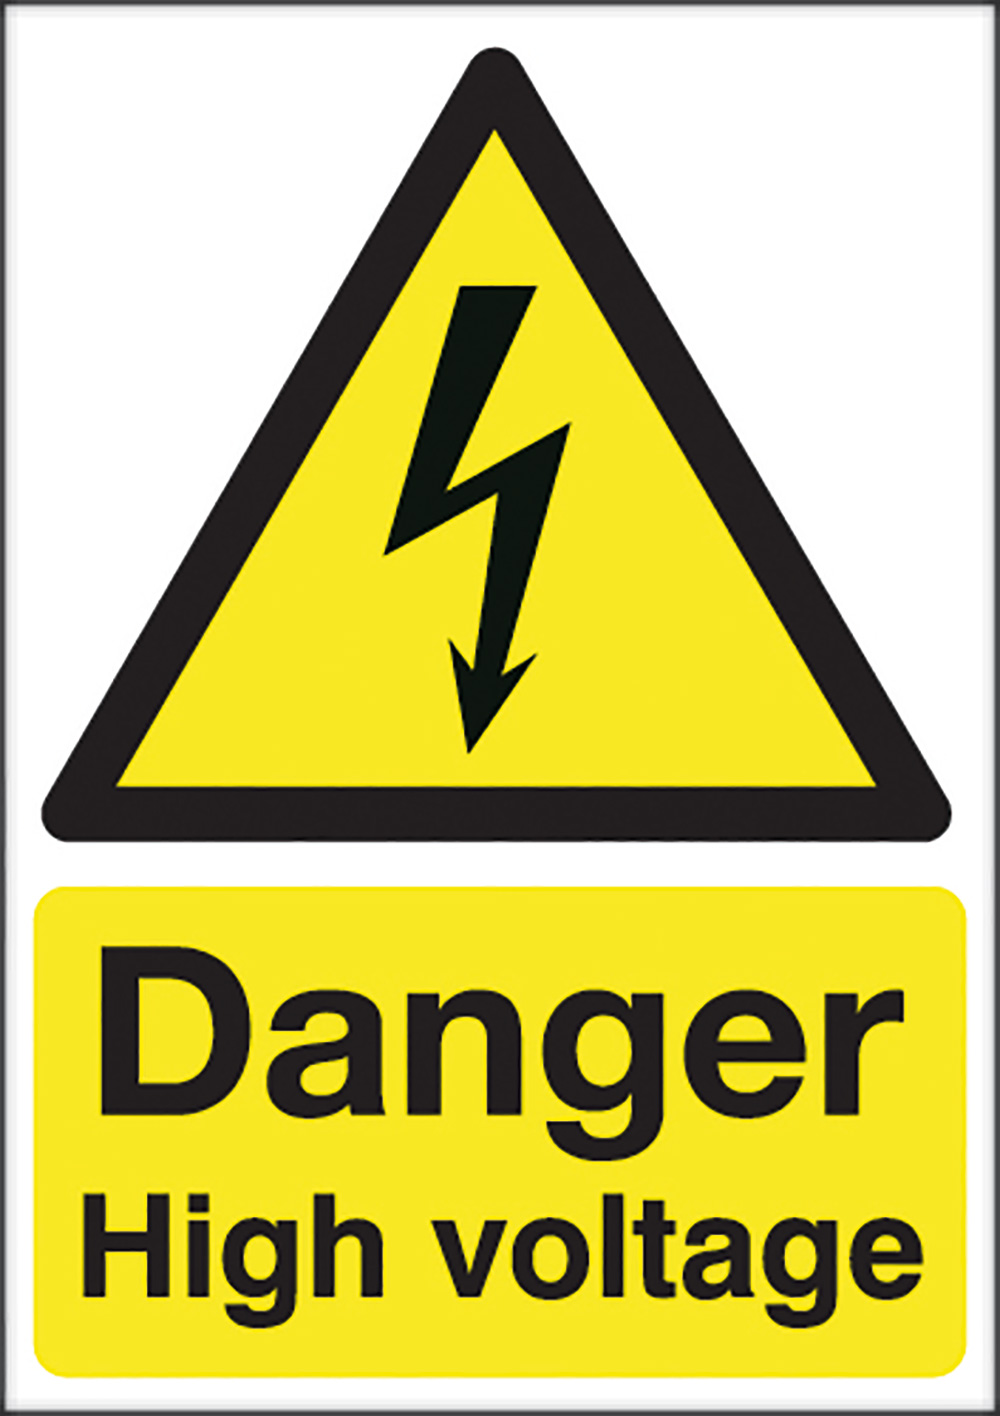 Danger High Voltage  420x297mm Self Adhesive Vinyl Safety Sign